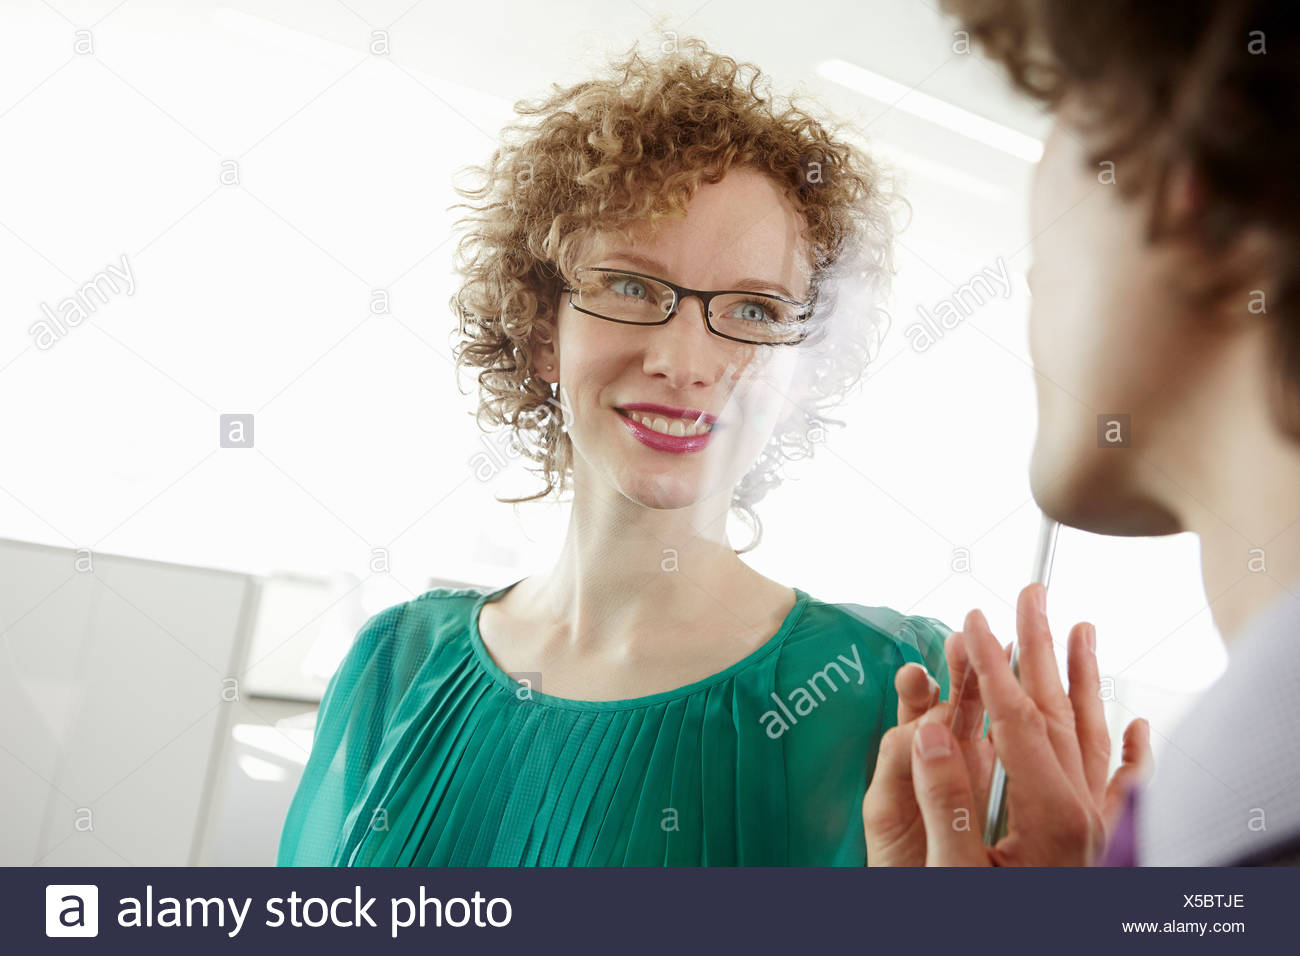 Businessman and woman holding hands against glass wall, separated - Stock Image